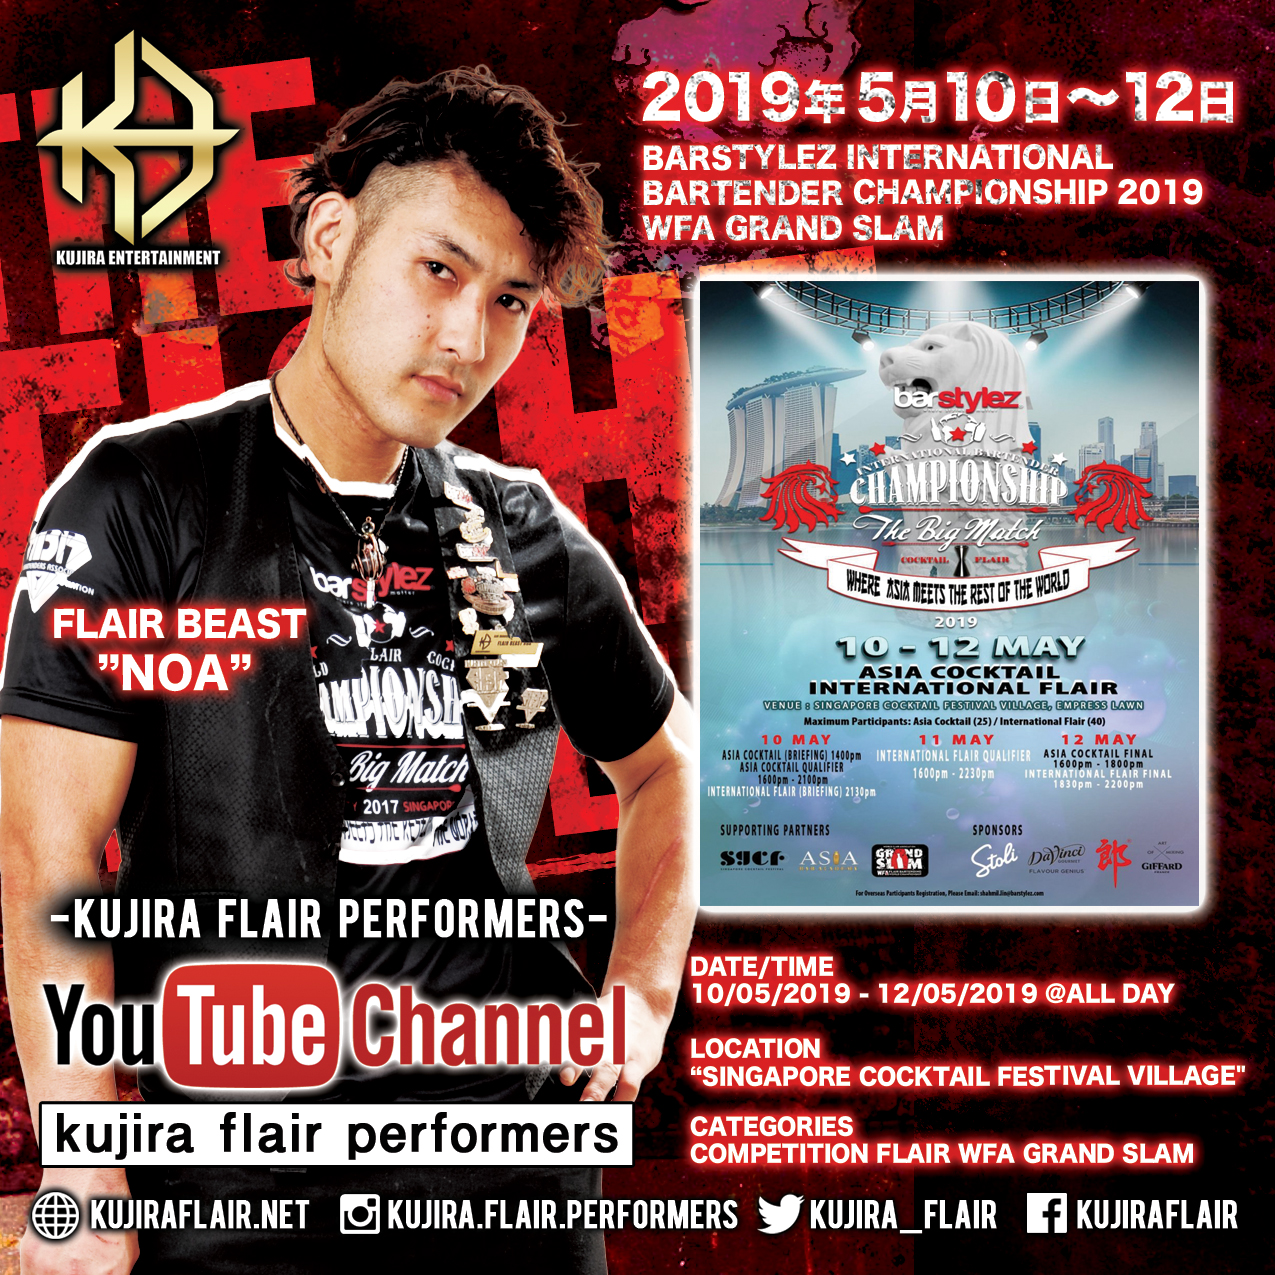 2019年5月10日〜5月12日開催 Barstylez International Bartender Championship 2019 WFA Grand Slam